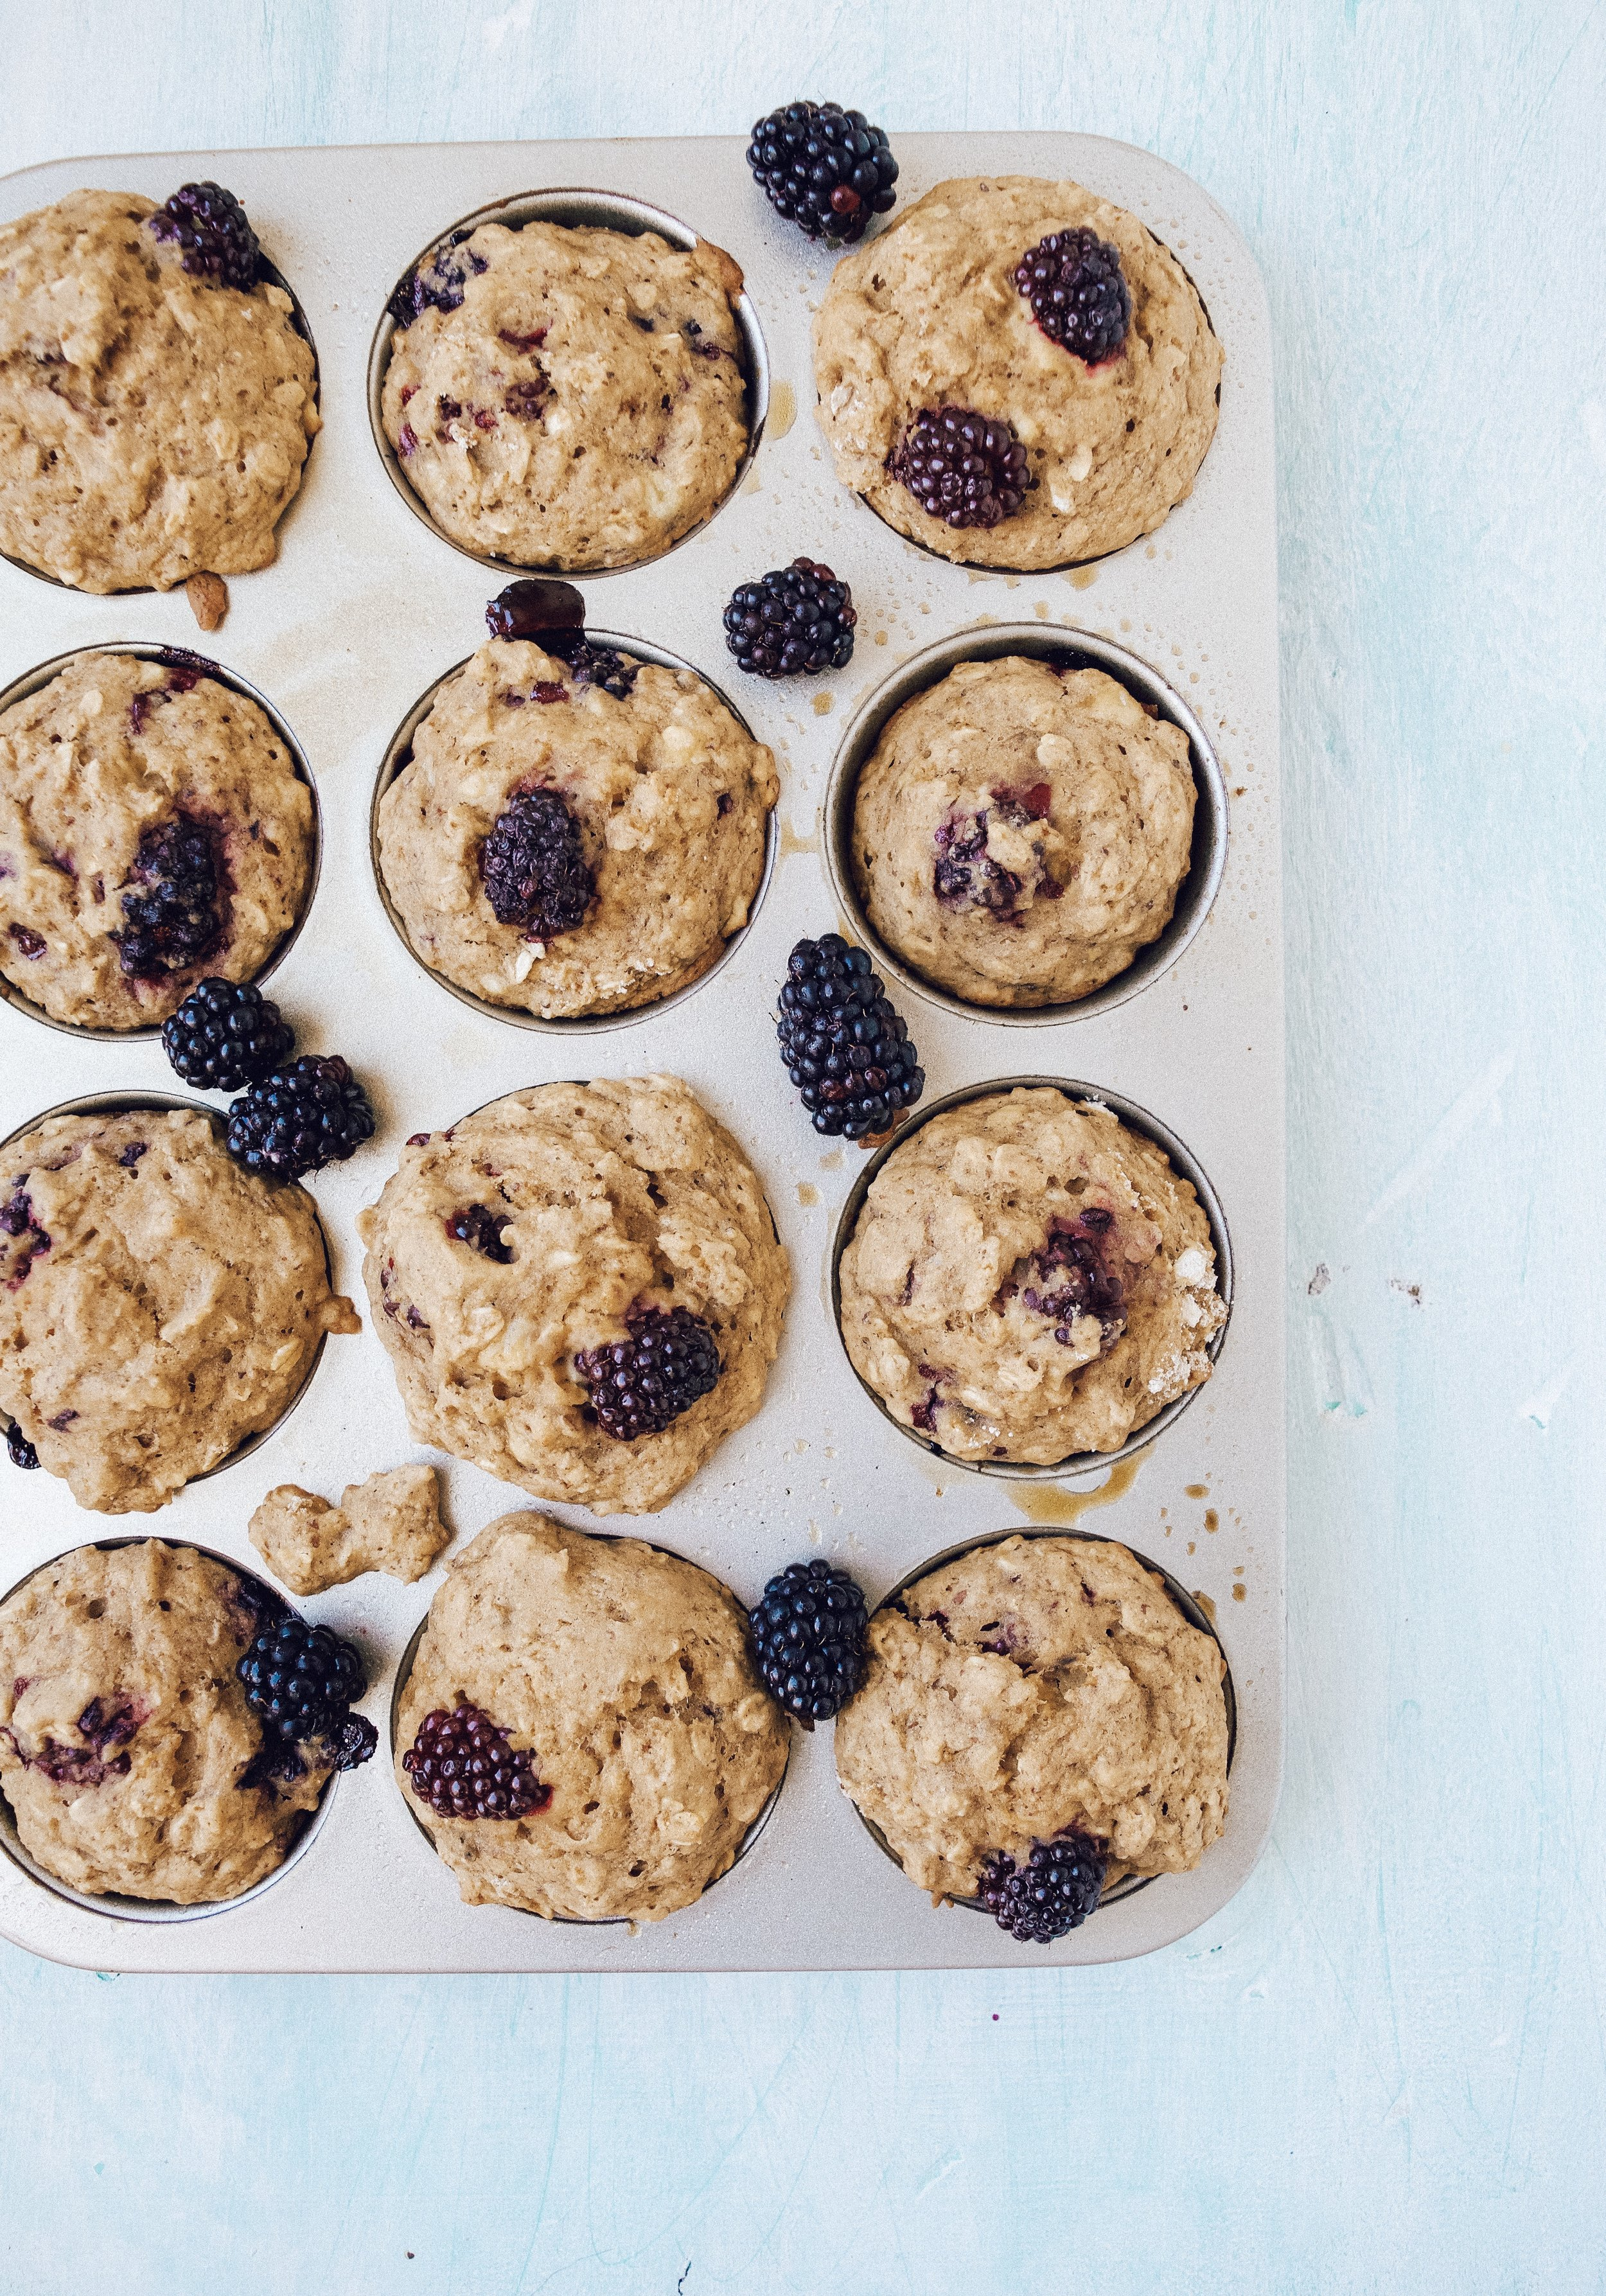 blackberry-muffins-vegan-baking.jpg